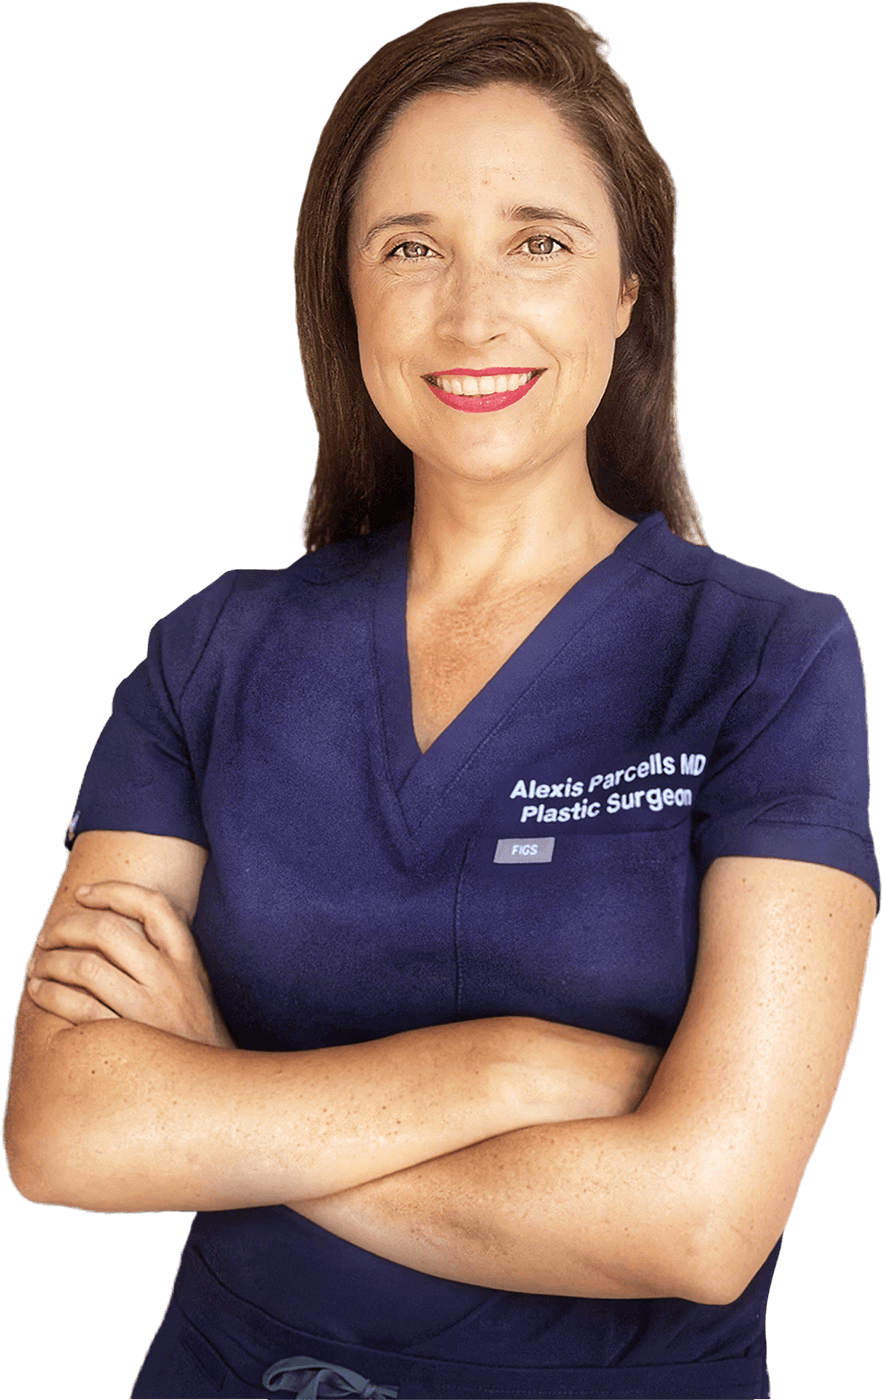 Dr. Parcells - New Jersey Plastic  Surgeon